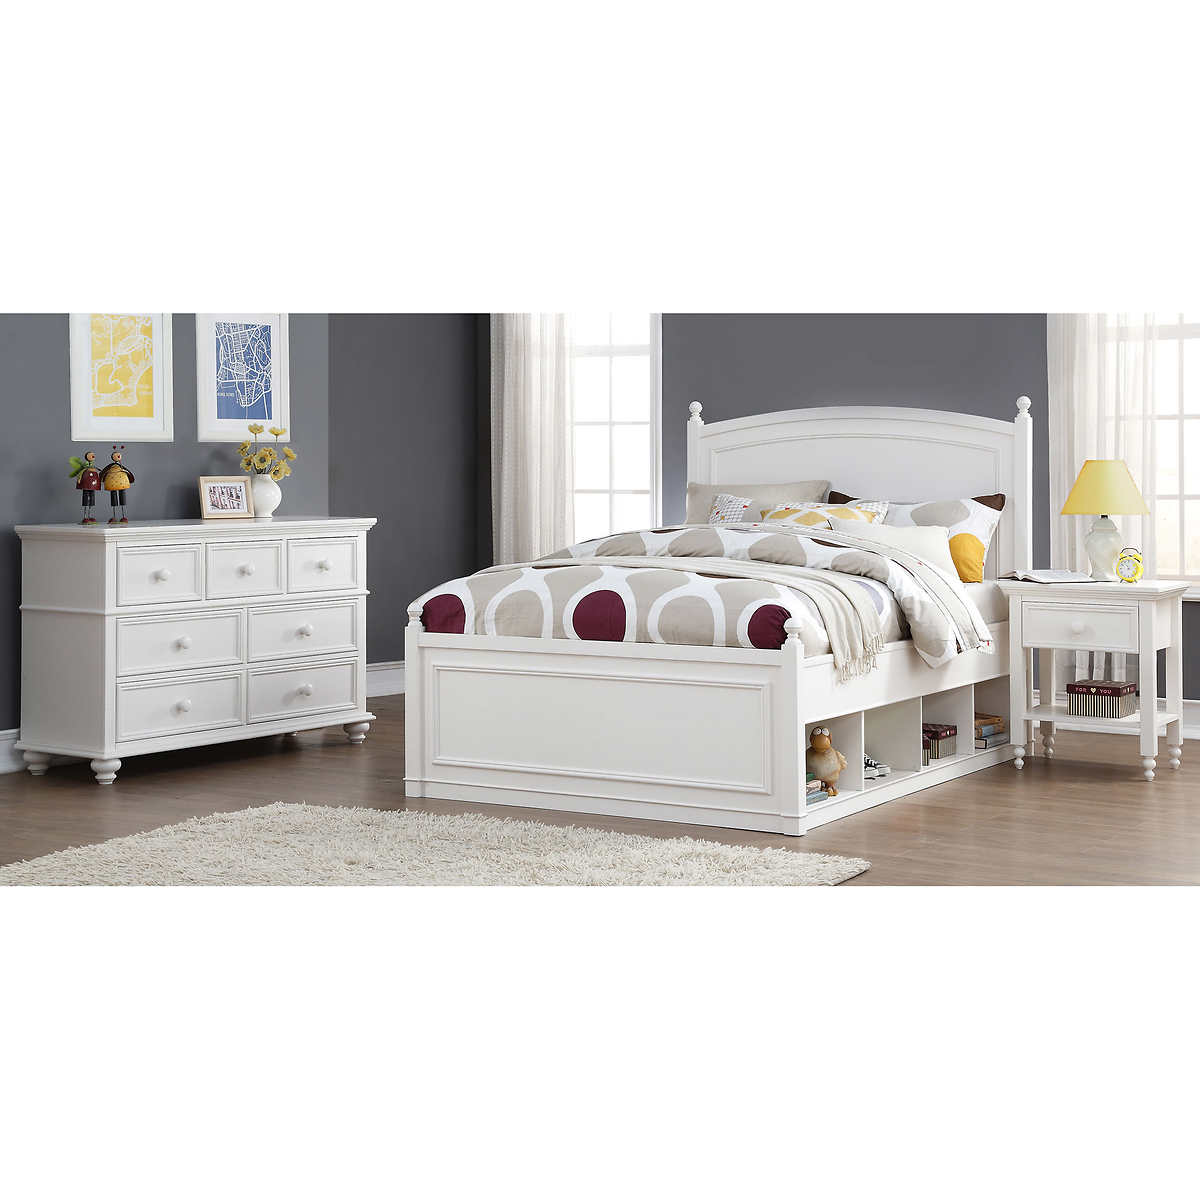 Mila 3-piece Full Storage Bedroom Set